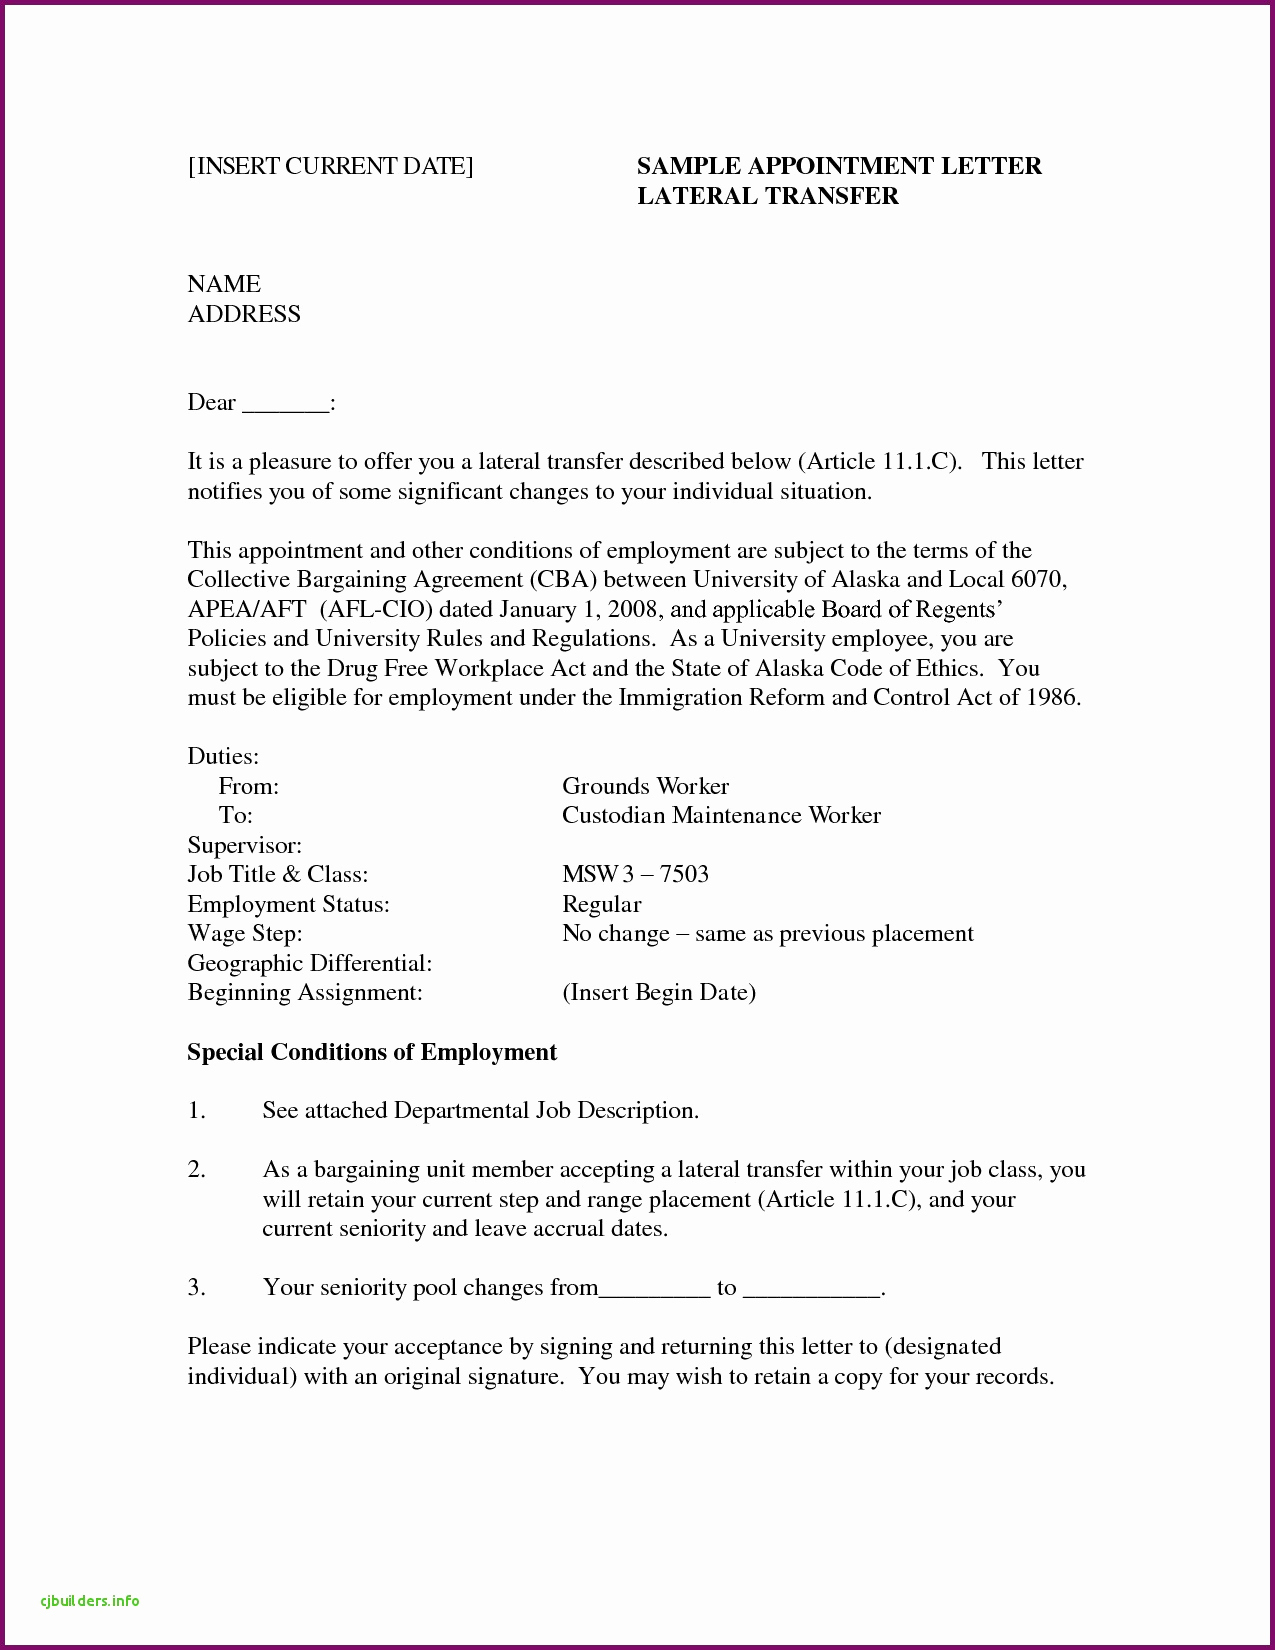 Employment Counter Offer Letter Template - 20 Salary Counter Fer Letter Sample